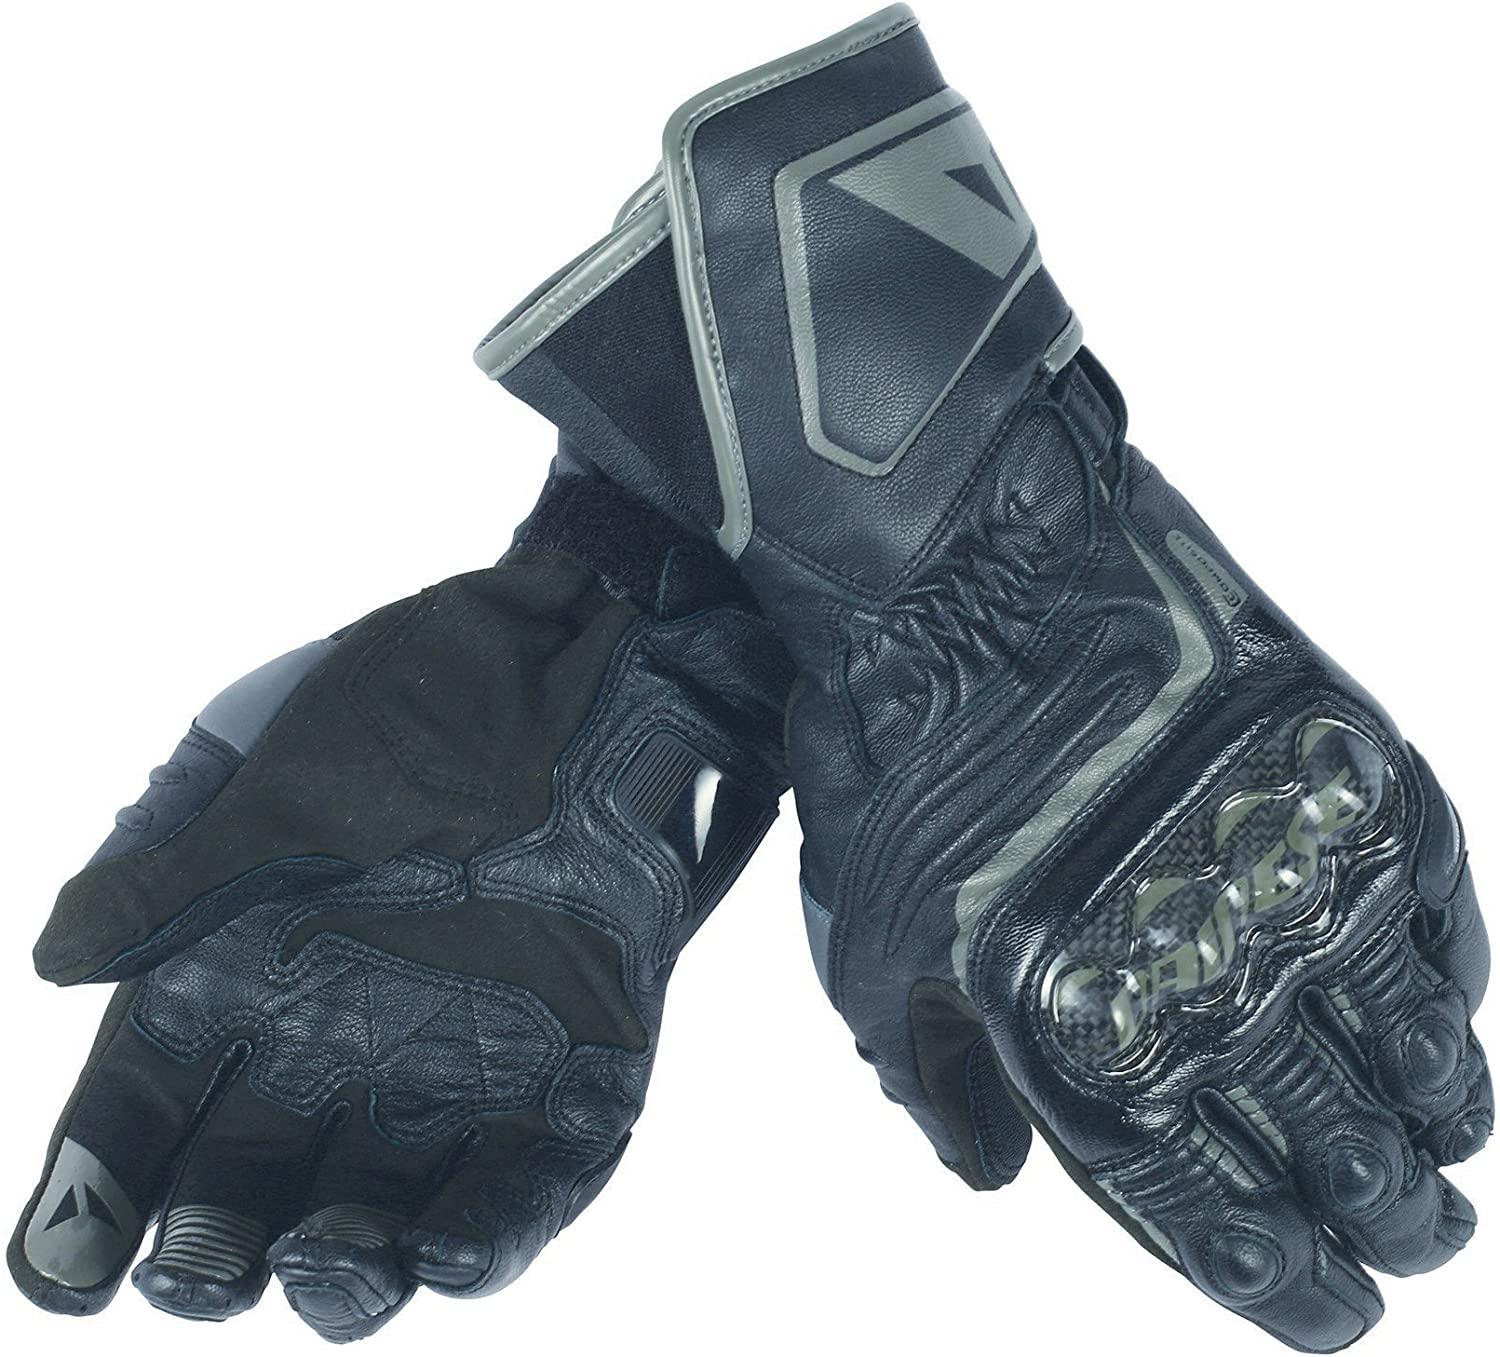 Mejores Guantes Dainese mujer